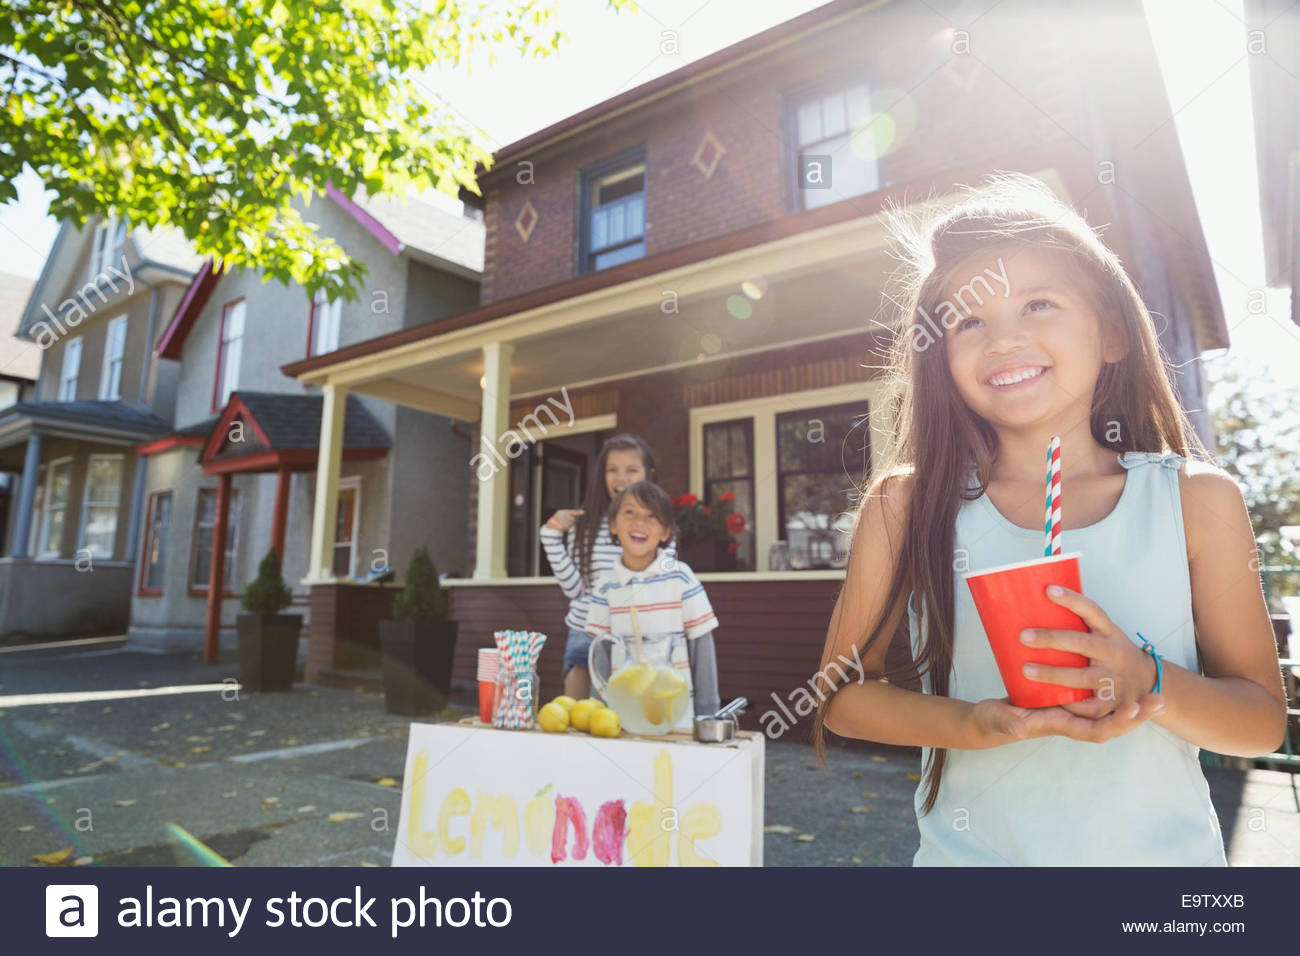 Smiling girl with cup at lemonade stand Stock Photo